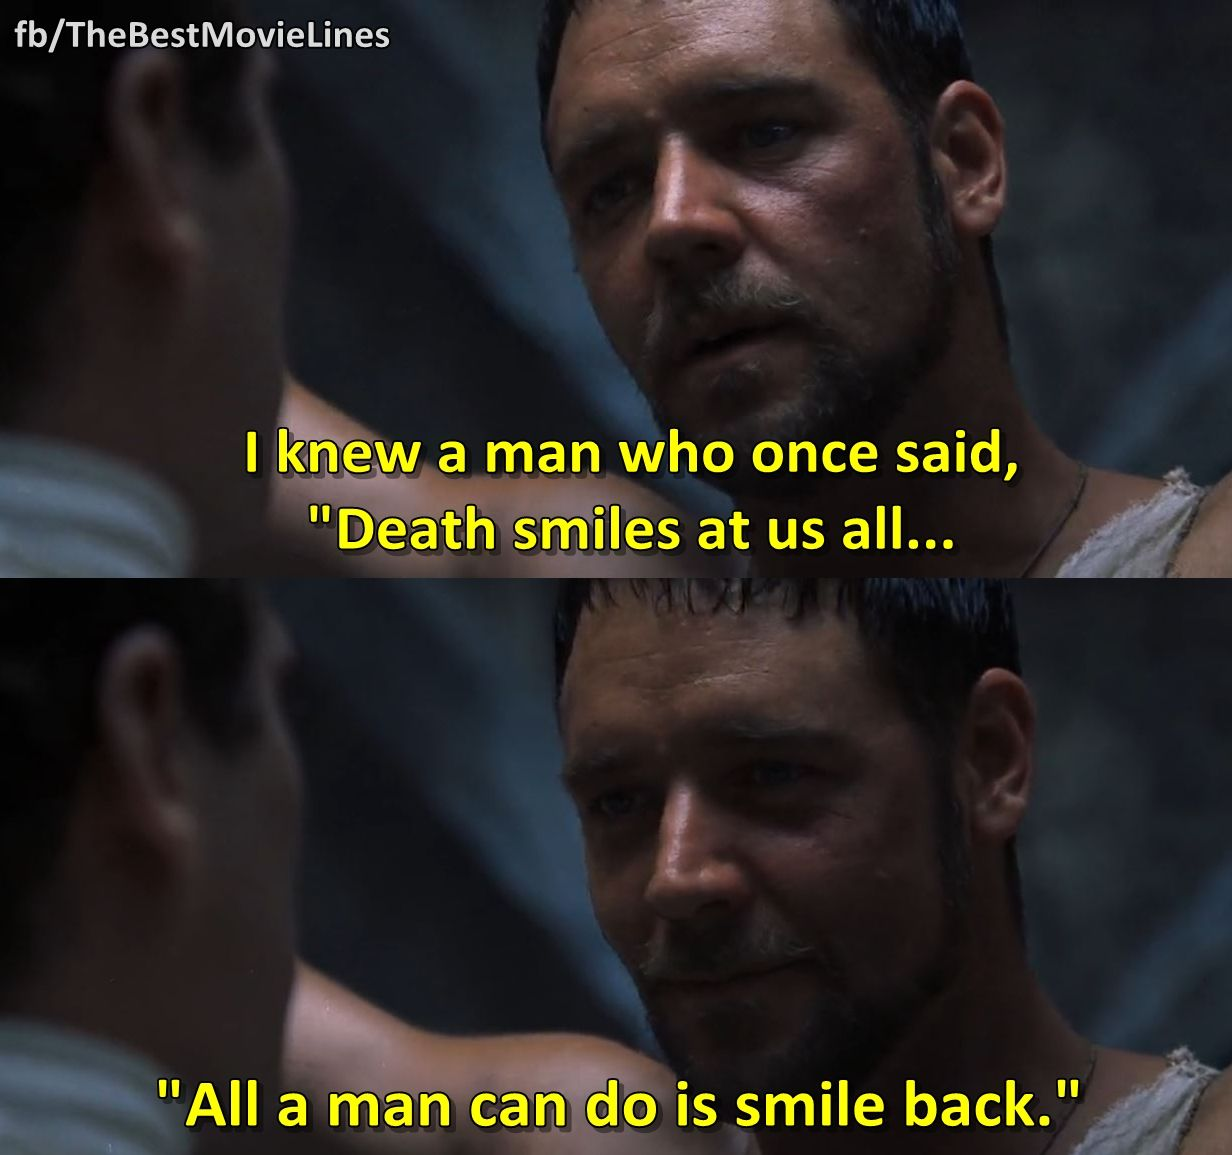 Epic Love Quotes From Movies: - Gladiator 2000 Russell Crowe Joaquin Phoenix Dir: Ridley